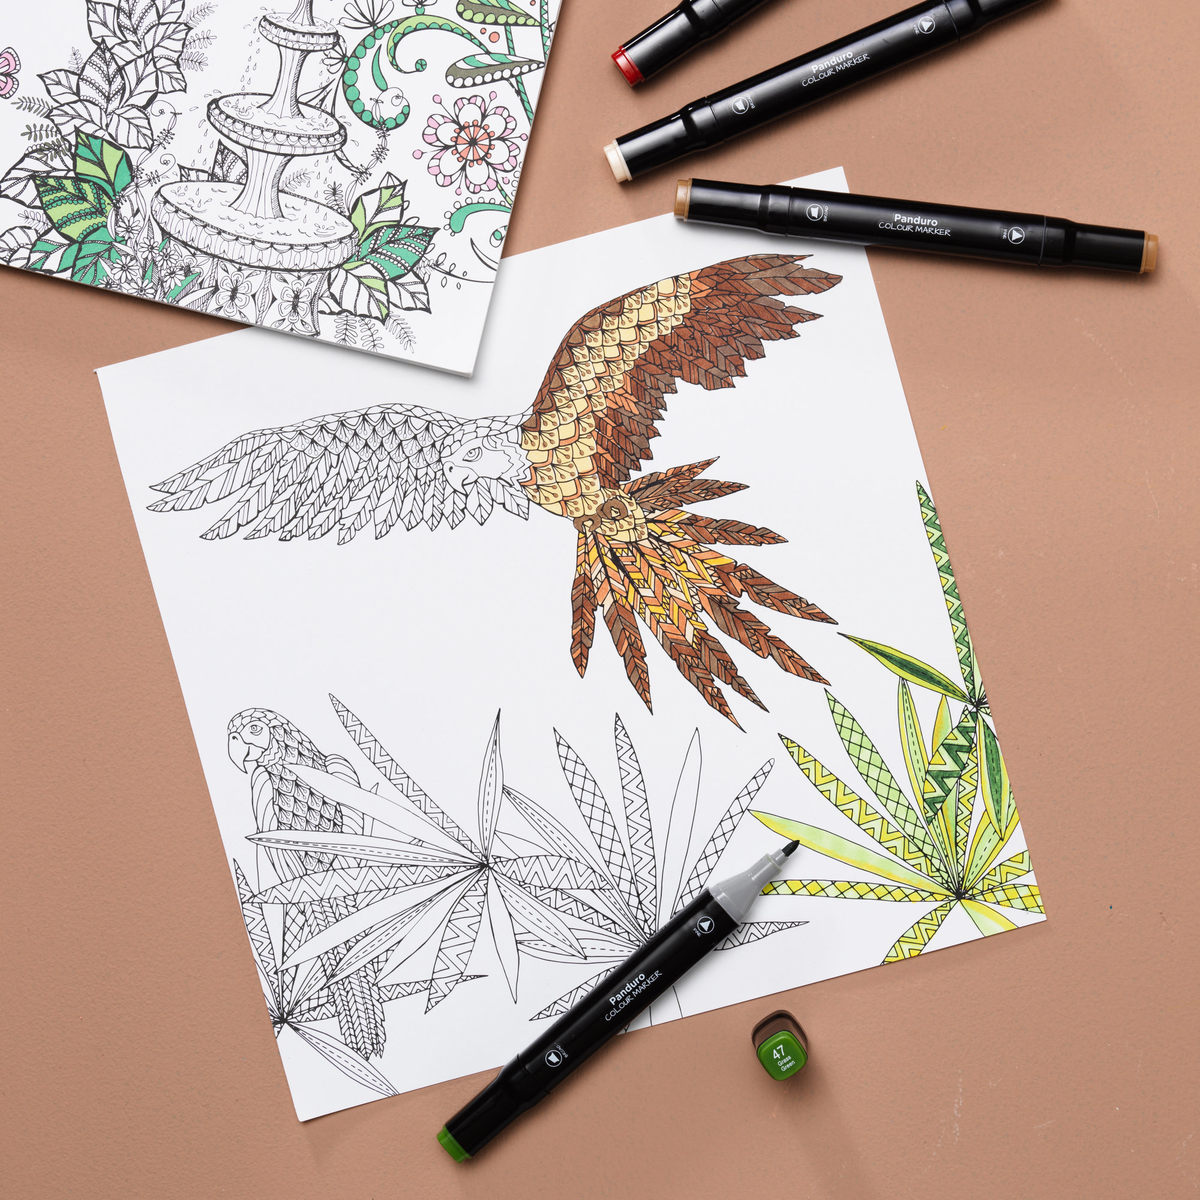 Colour in colouring books with markers